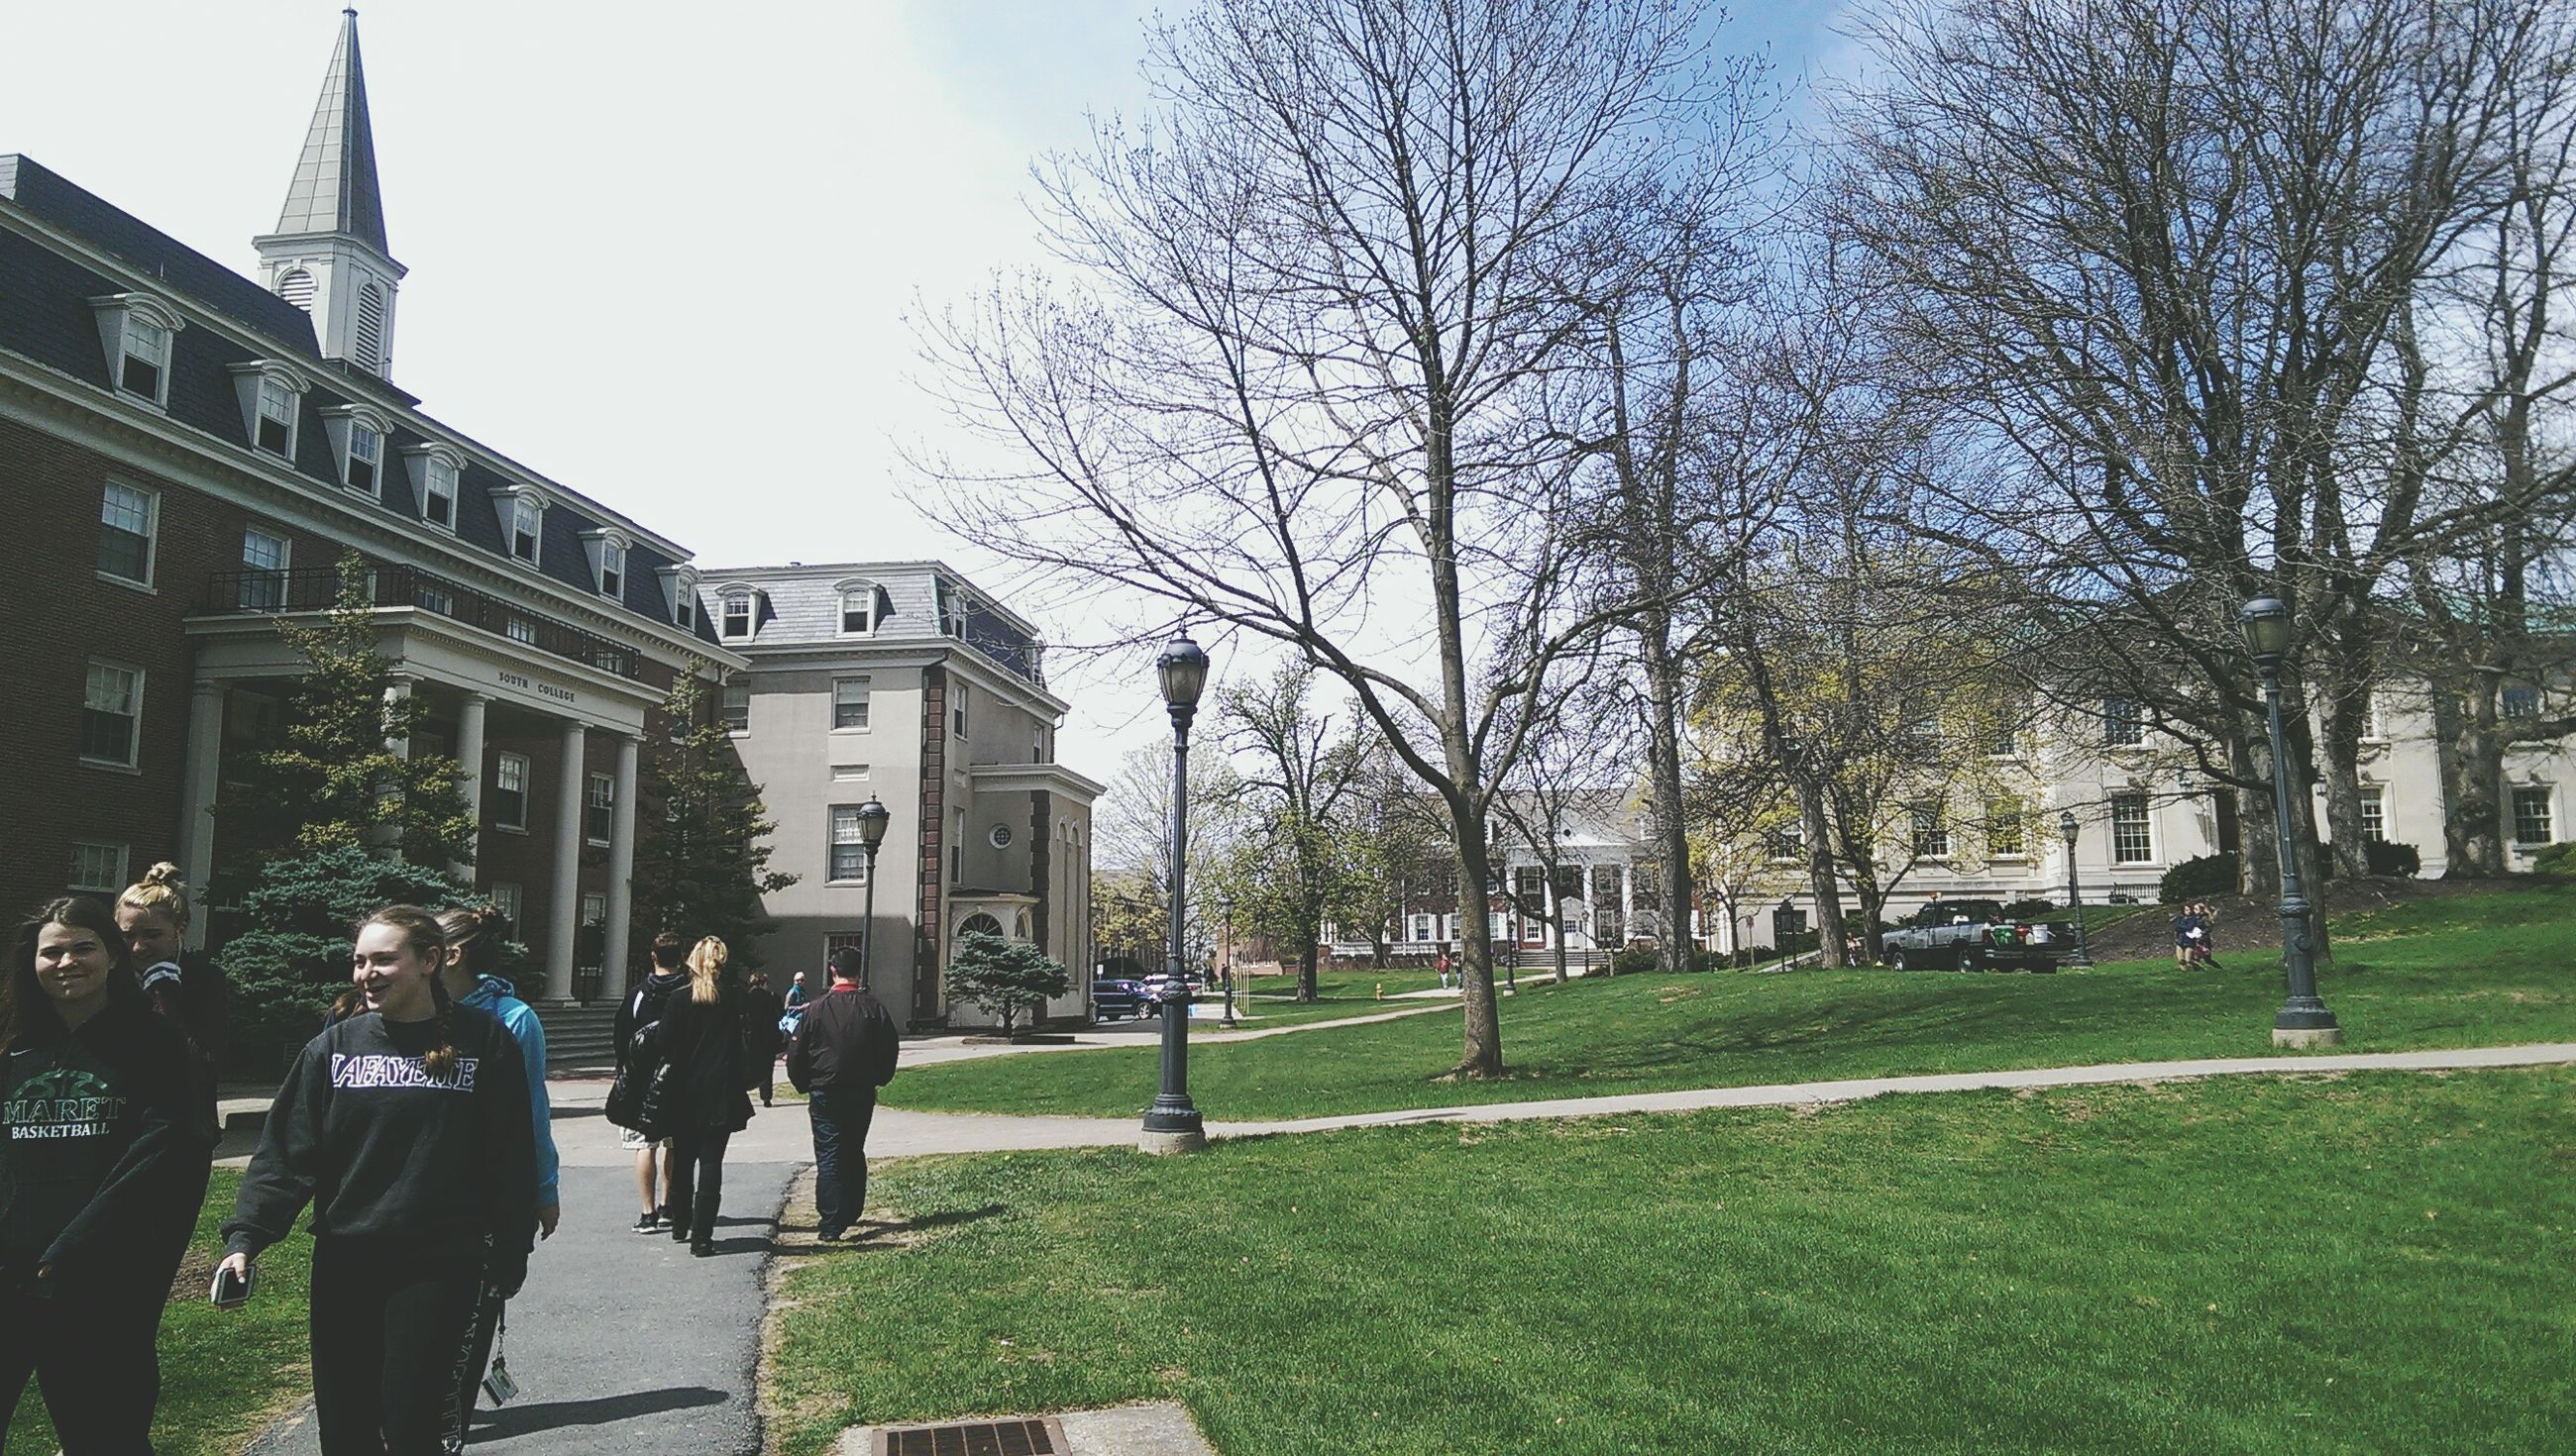 grass, tree, building exterior, men, person, large group of people, architecture, lifestyles, built structure, leisure activity, walking, park - man made space, lawn, sky, city, green color, day, city life, bare tree